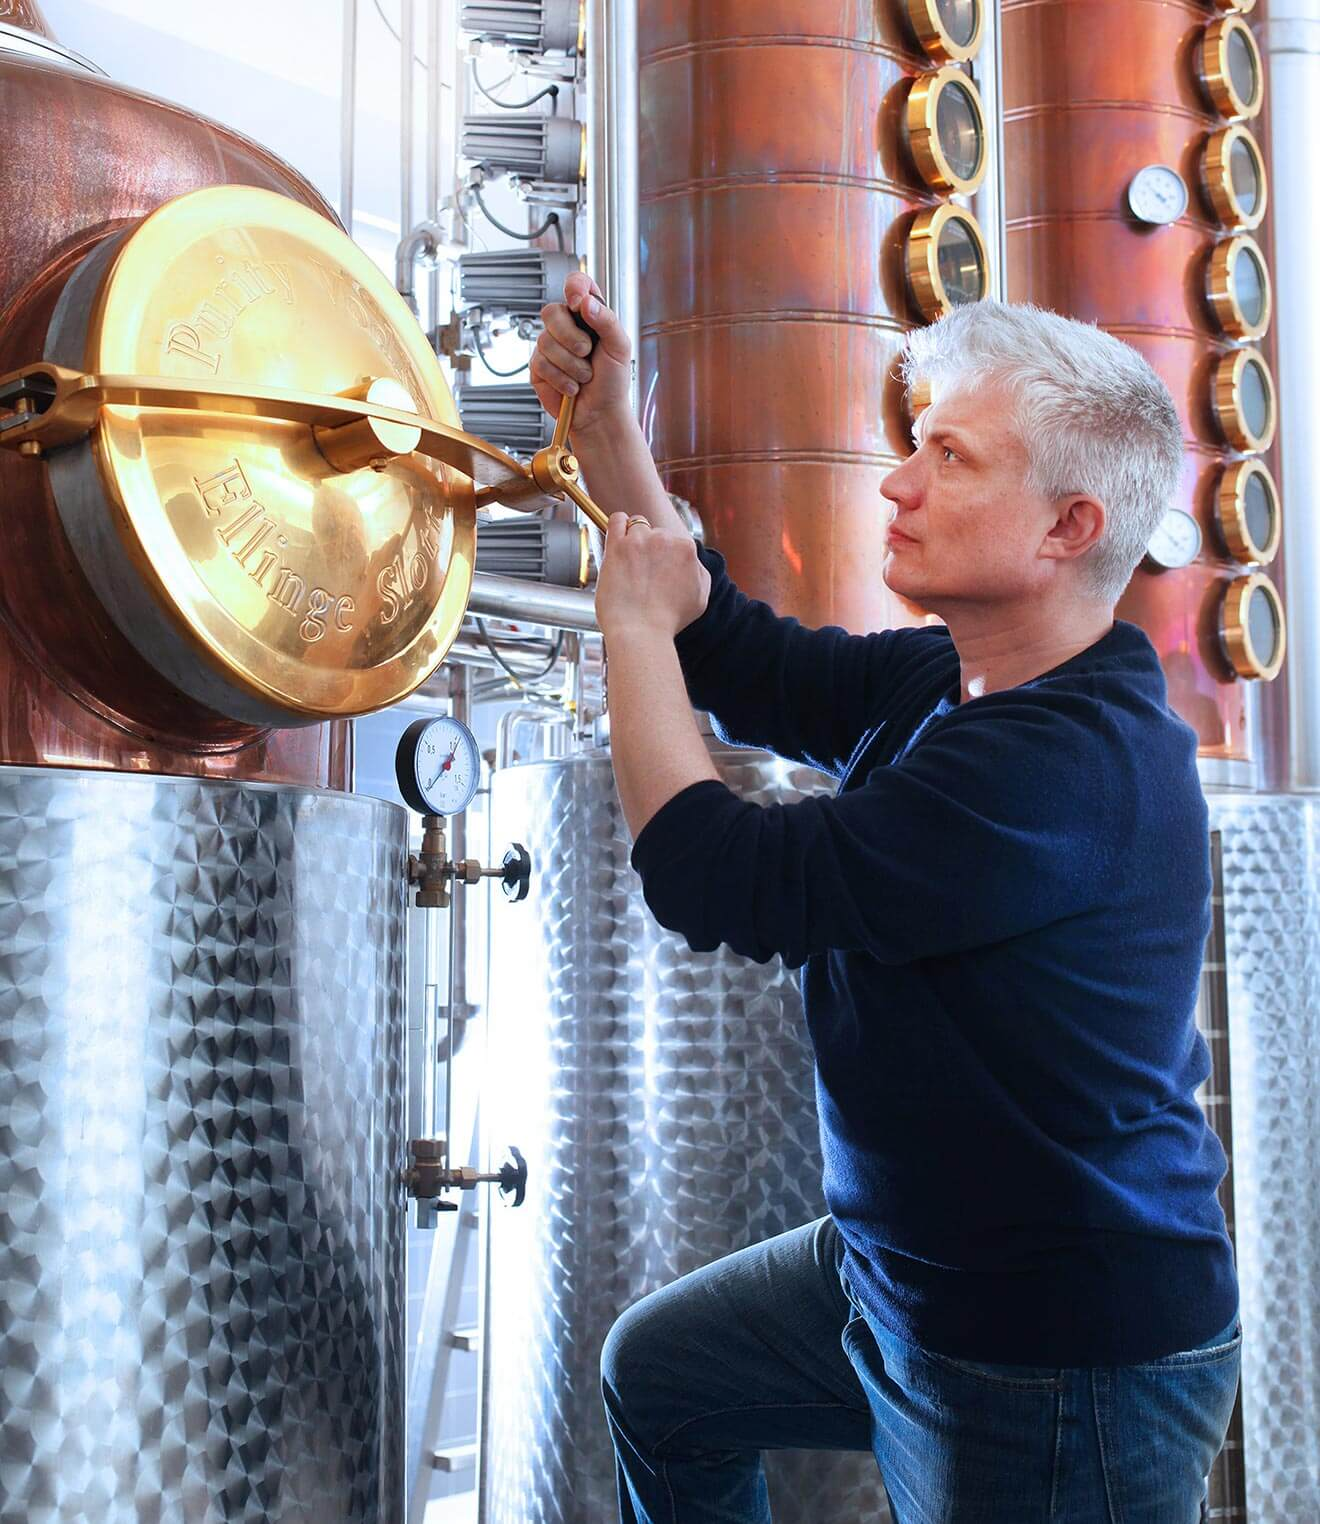 Thomas Kuuttanen - Master Blender of the Year for Purity Vodka